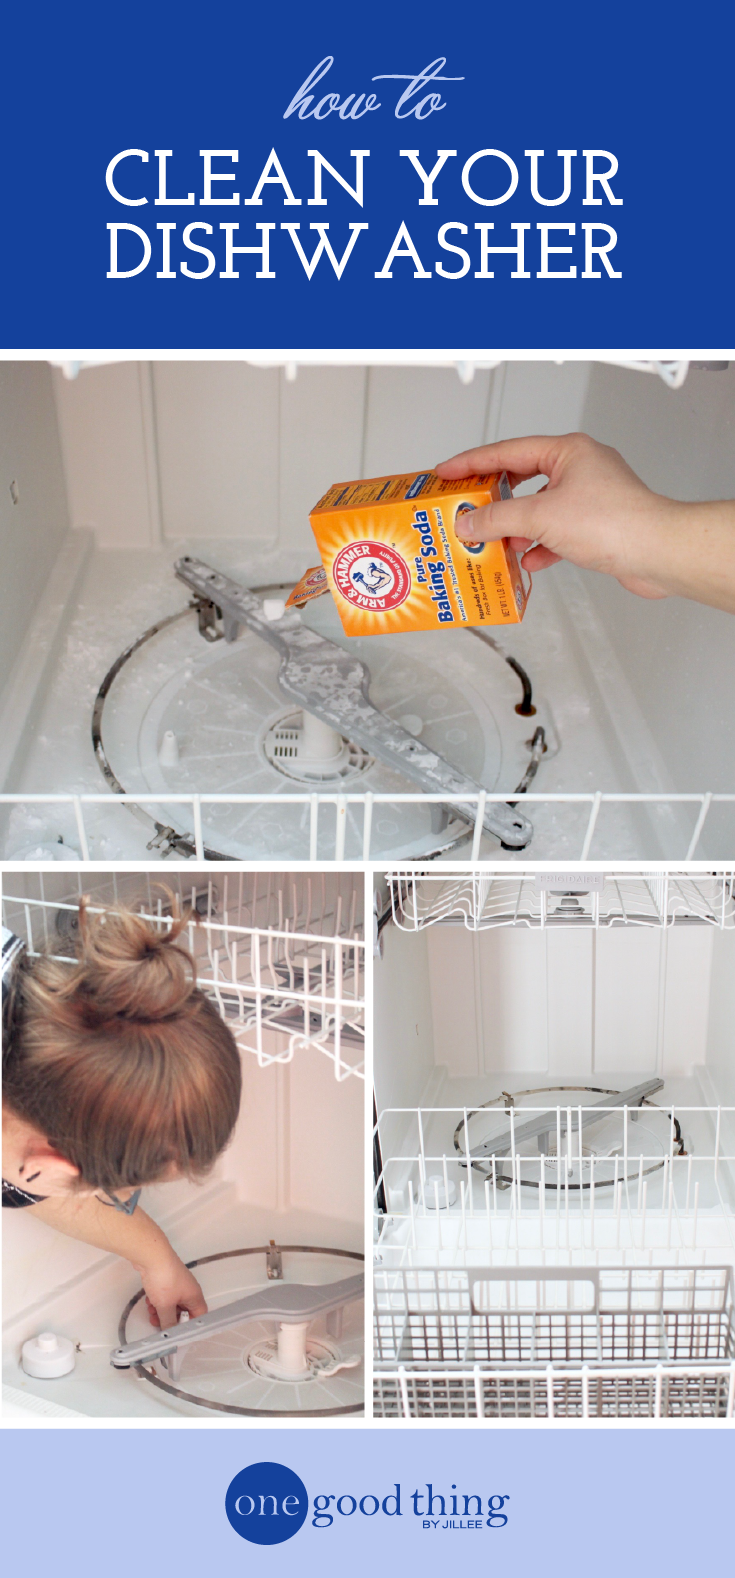 How To Deep Clean A Dishwasher In 3 Easy 198744 Png Images Pngio